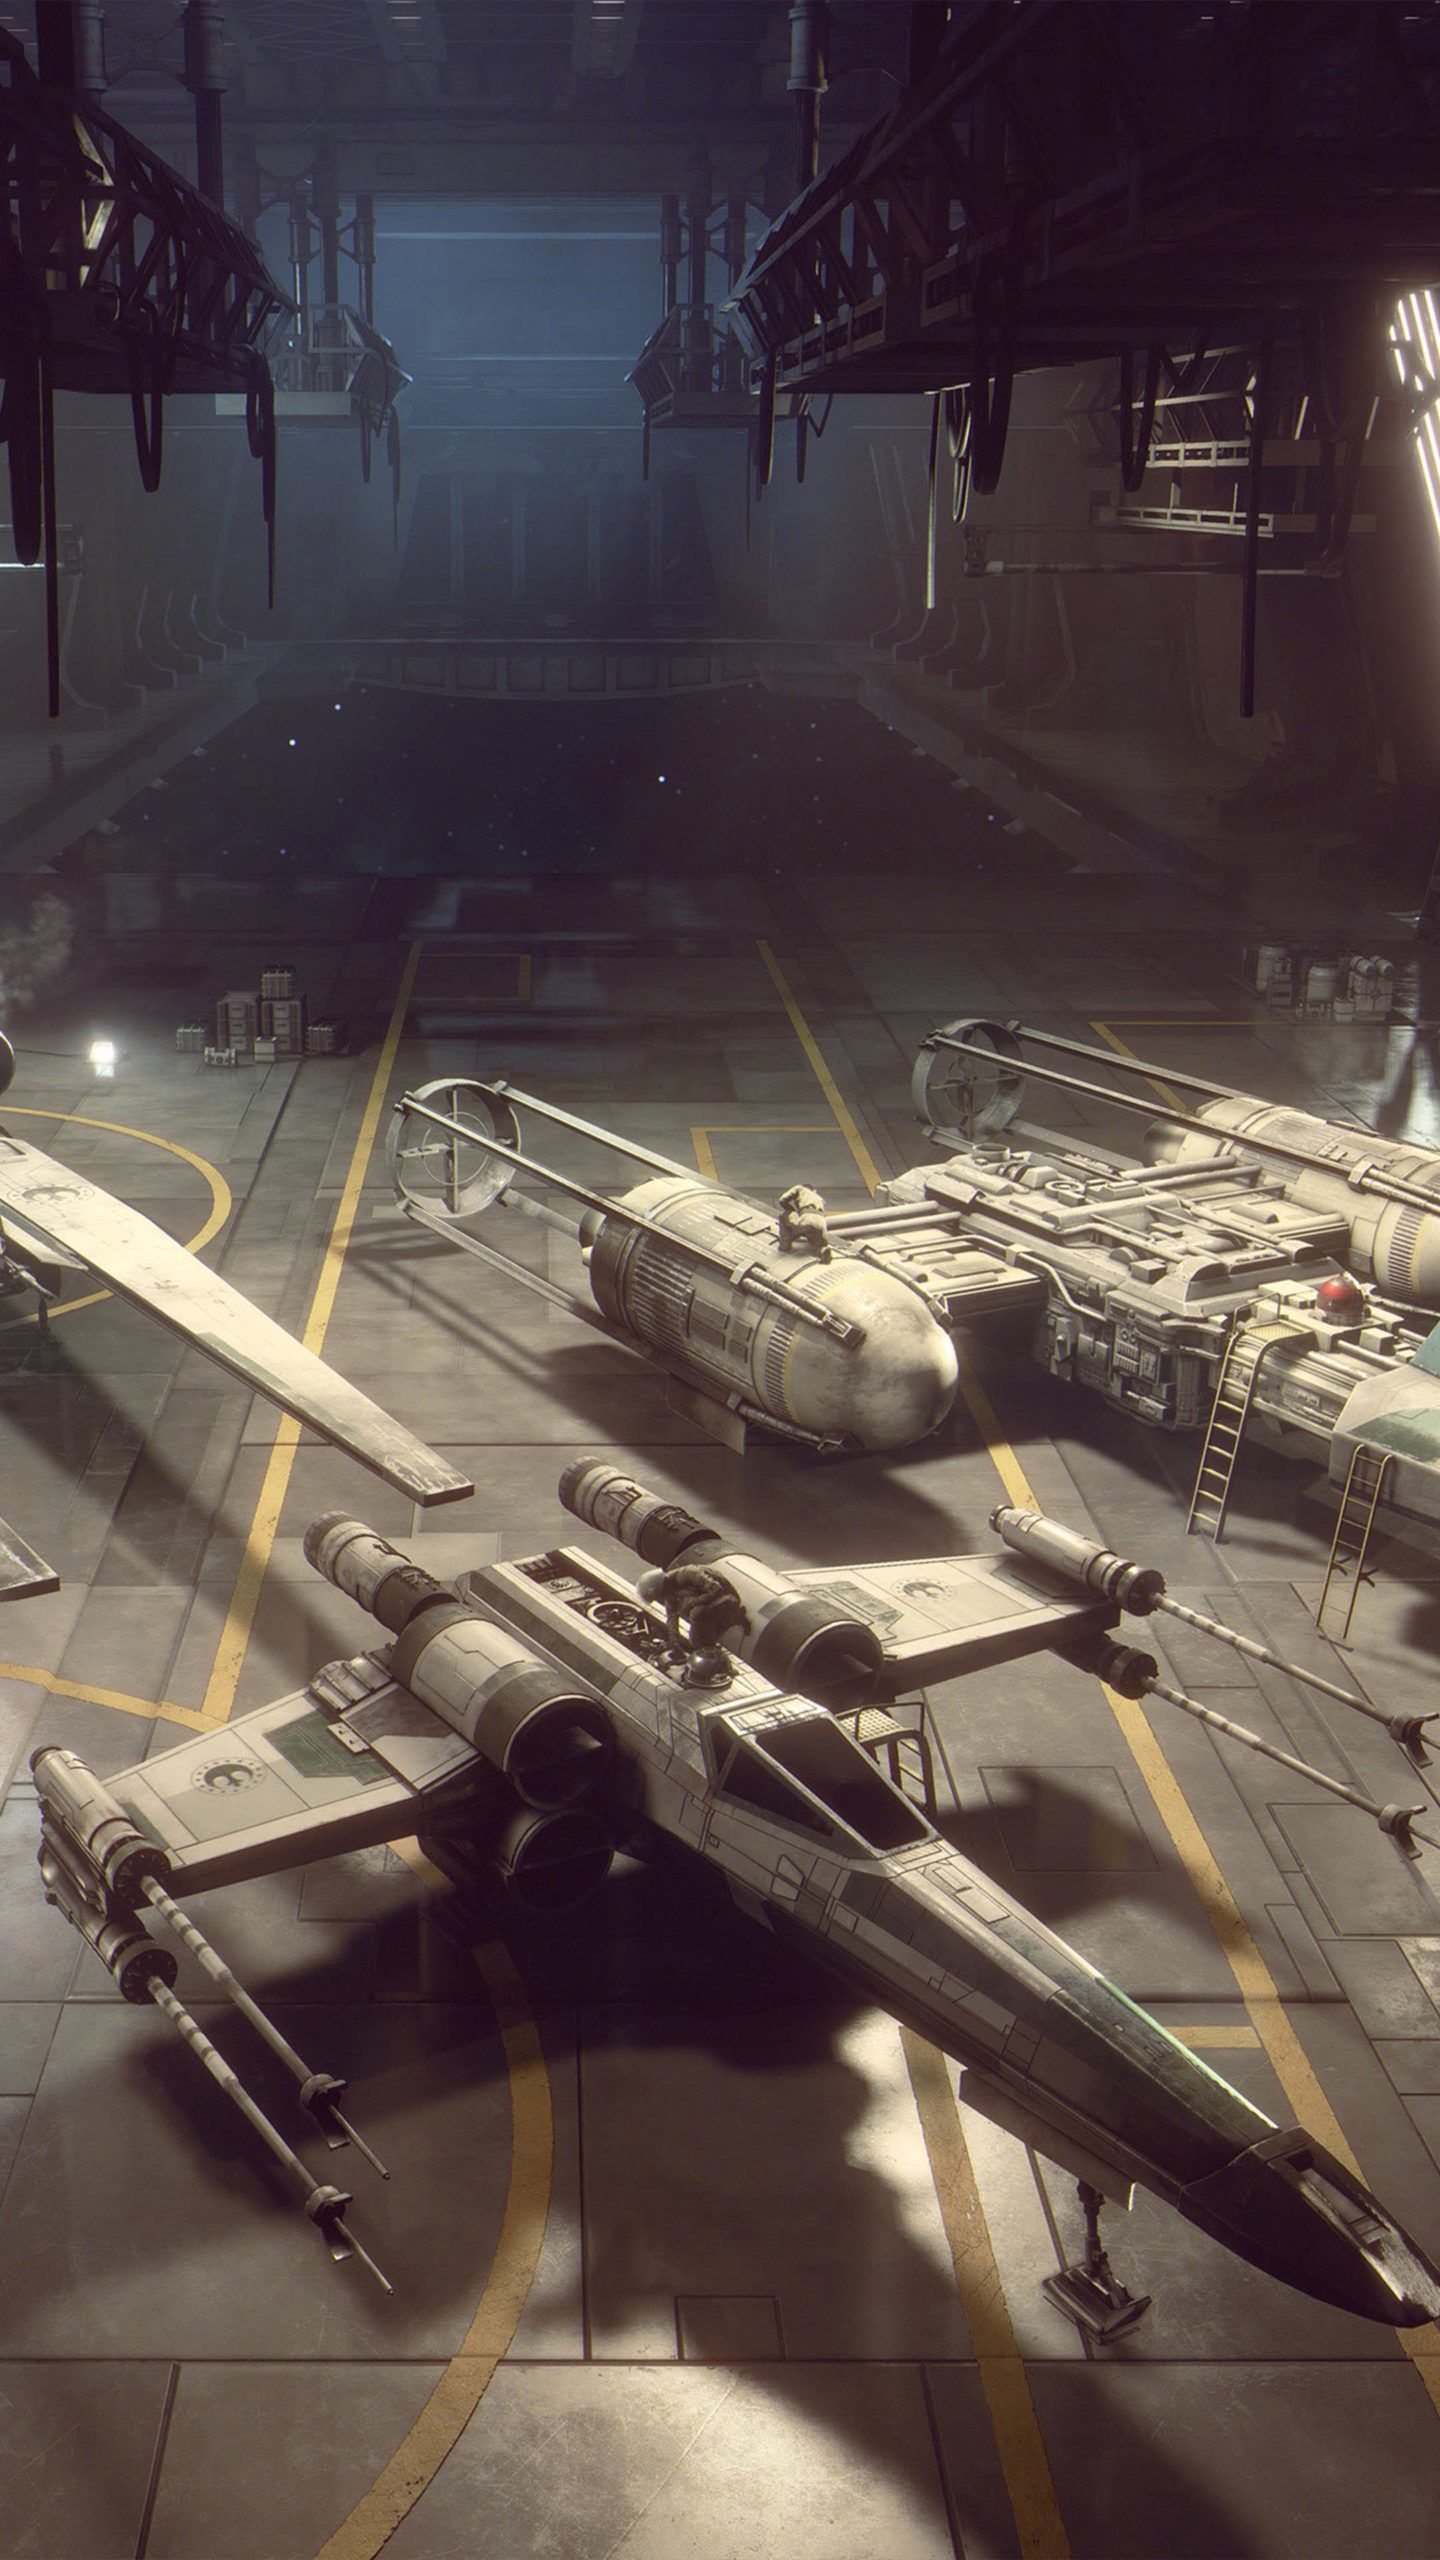 Spaceships Star Wars Squadrons 4k Ultra Hd Mobile Wallpaper In 2020 Star Wars Mobile Wallpaper War